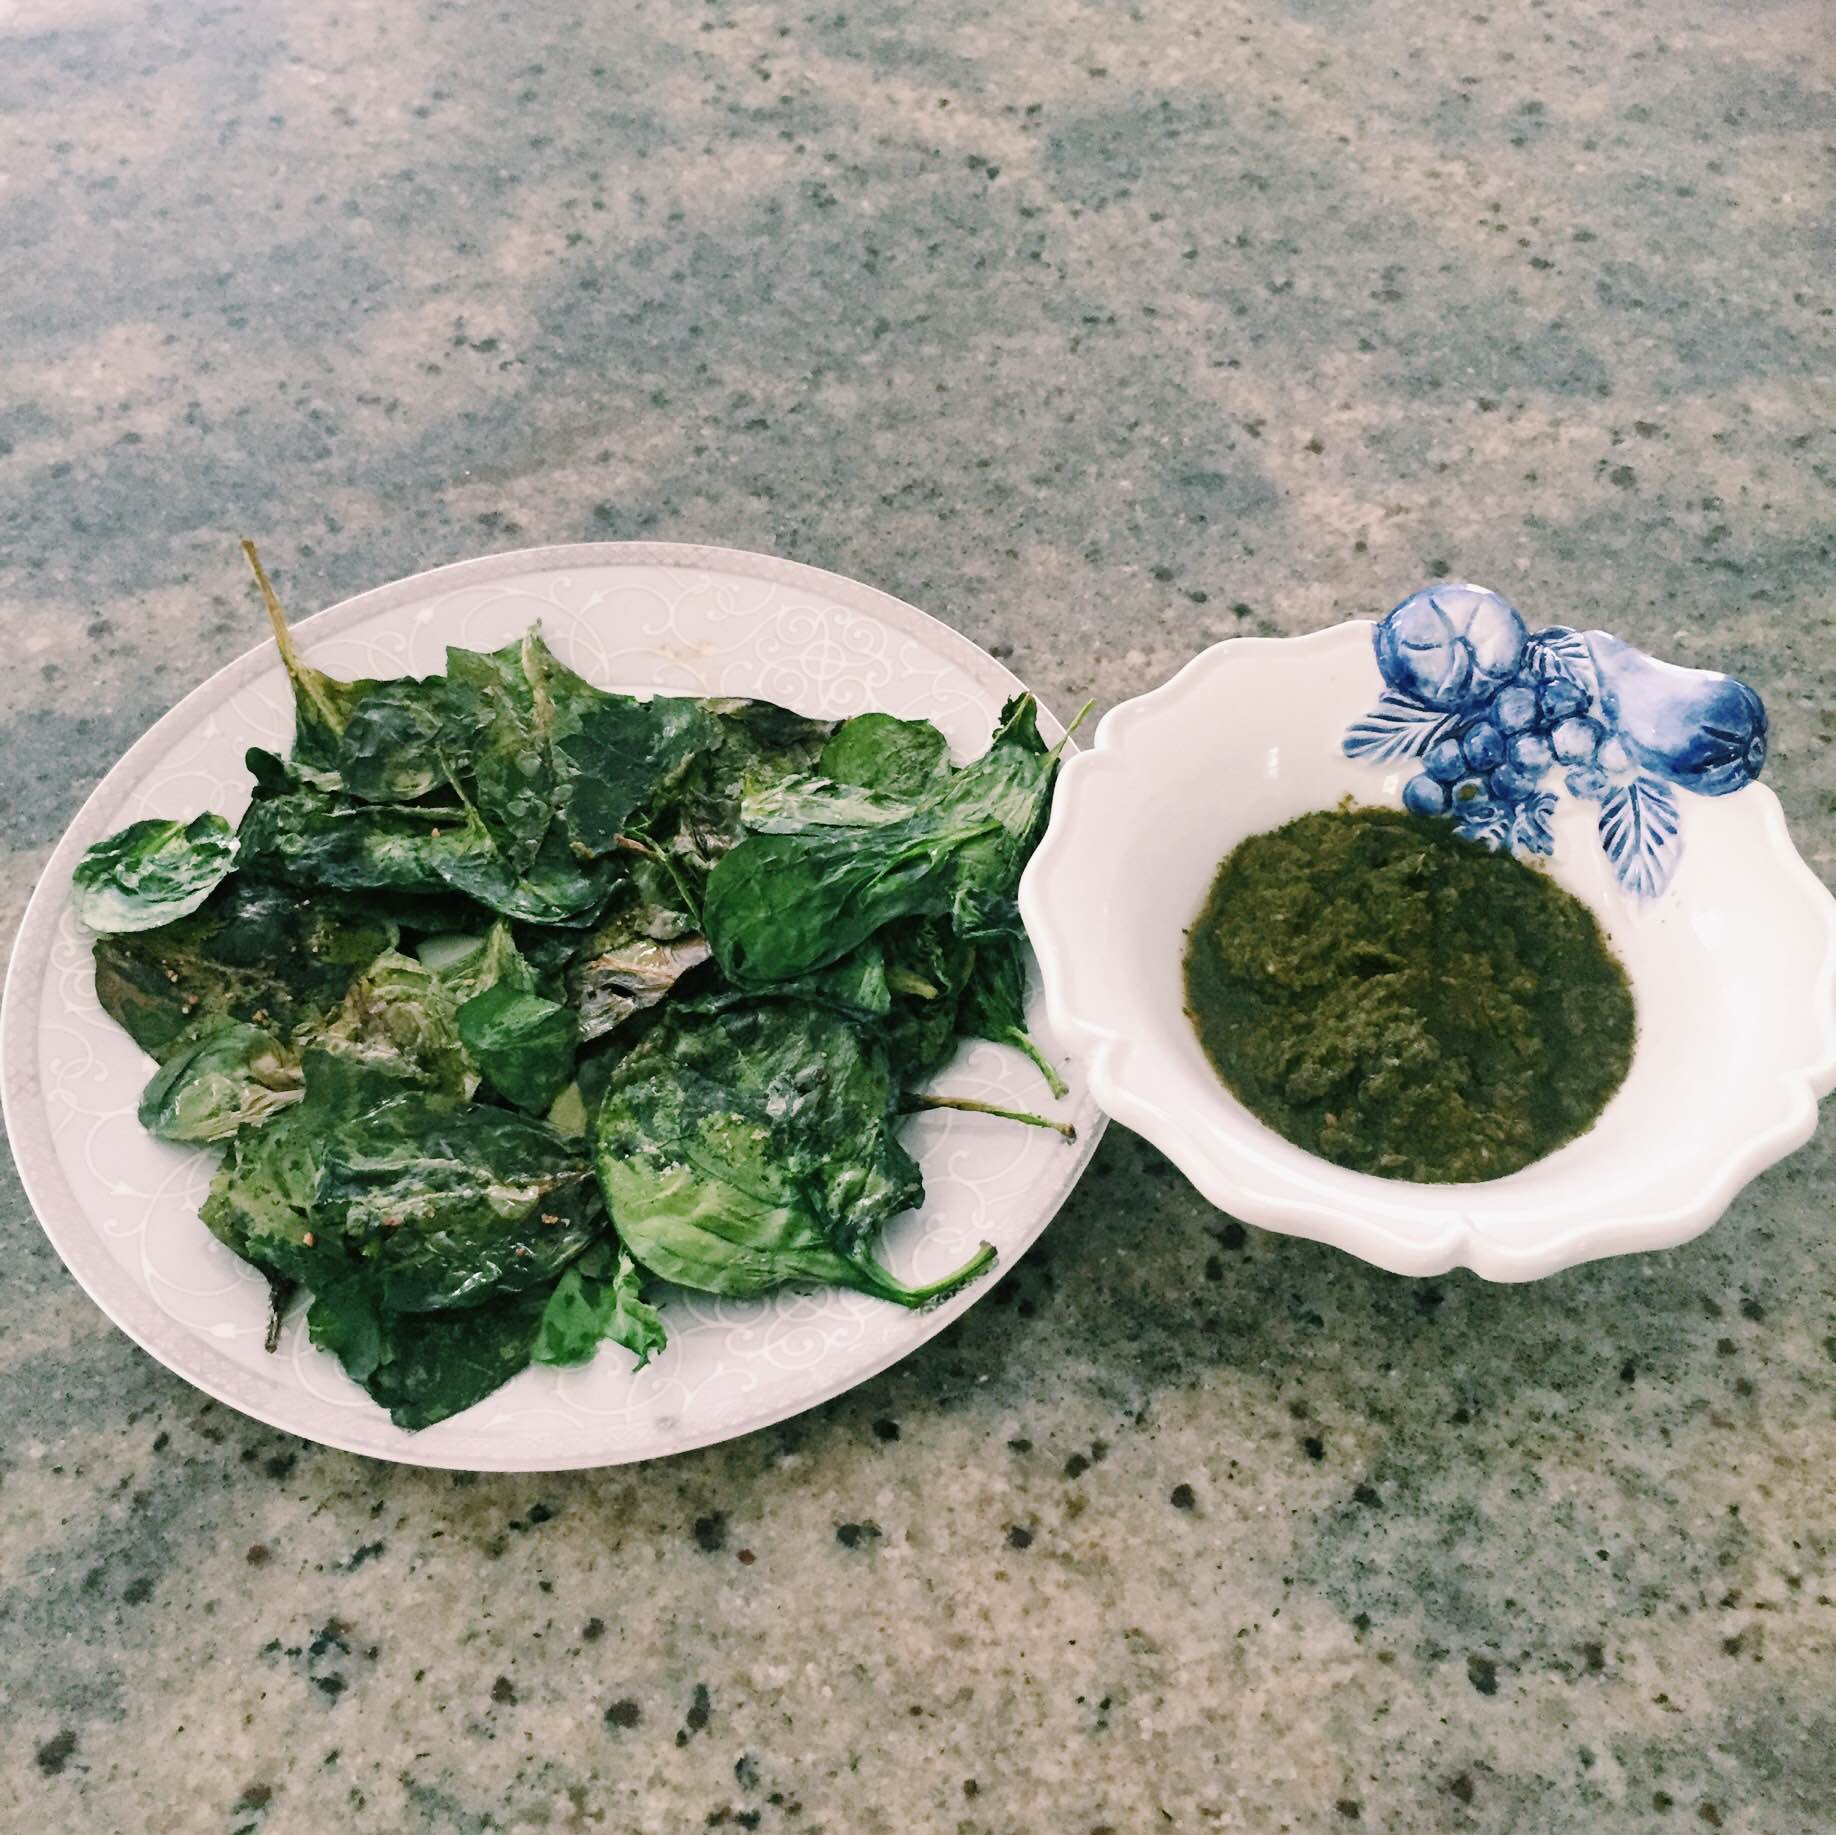 Low carb recipe spinach chips w/ chutney